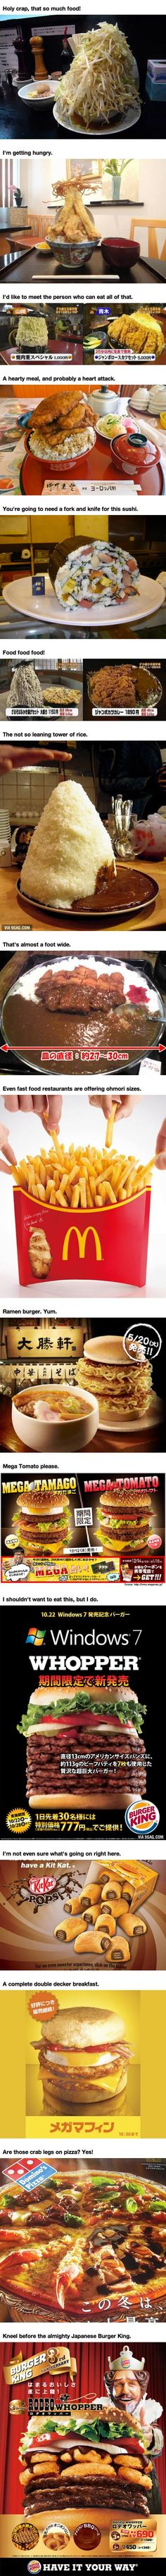 16 Huge Food You Have Never Seen Before